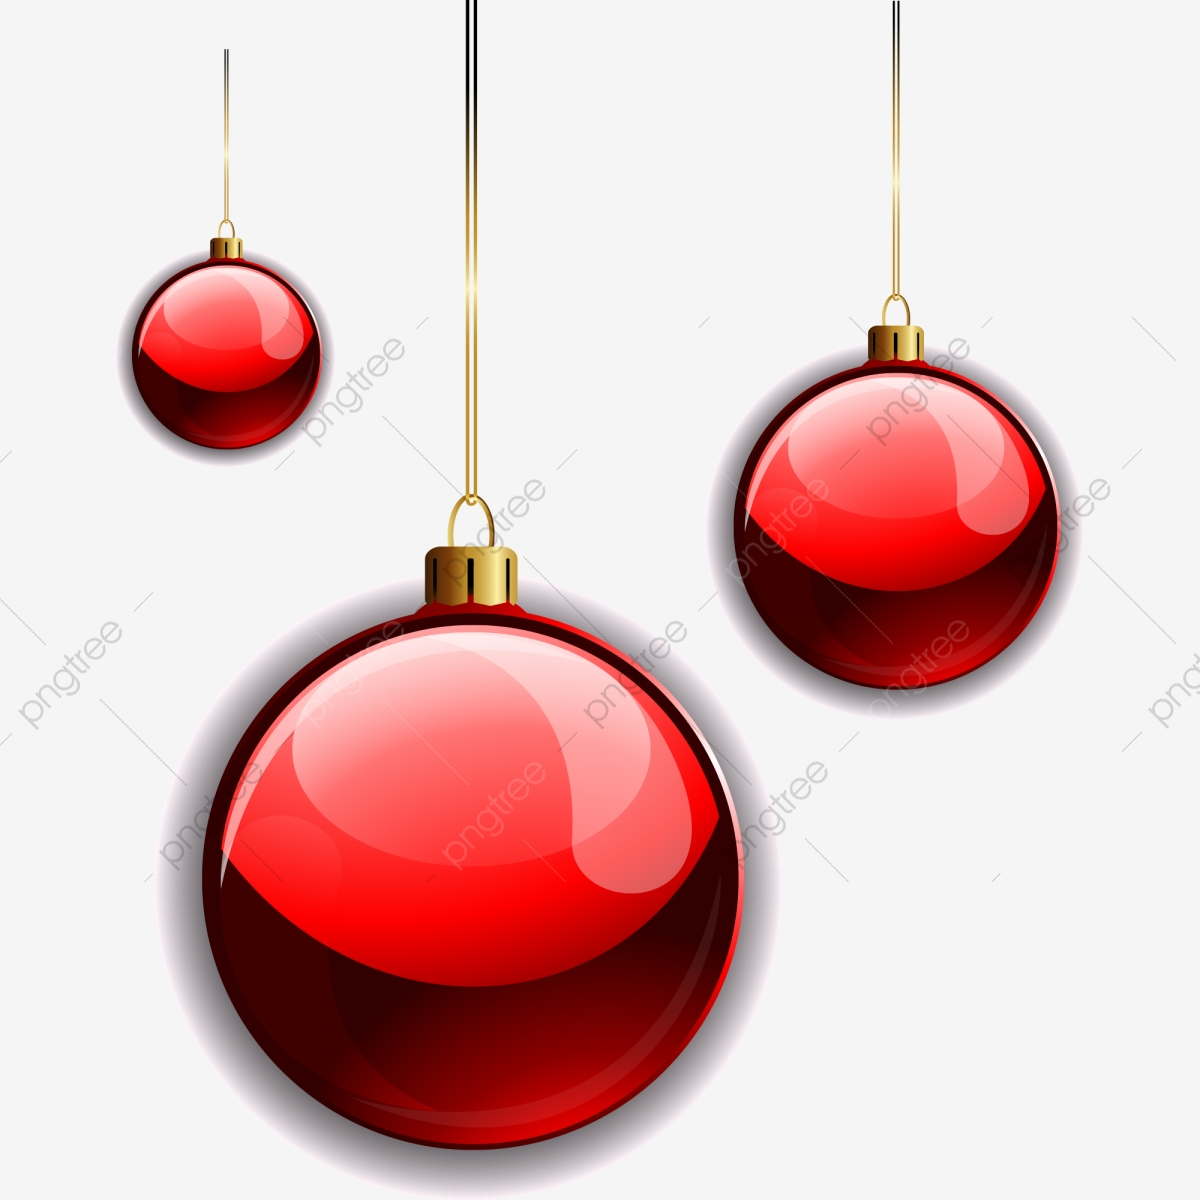 Creative Christmas Elements Red Ball Ai Material, Christmas Material.